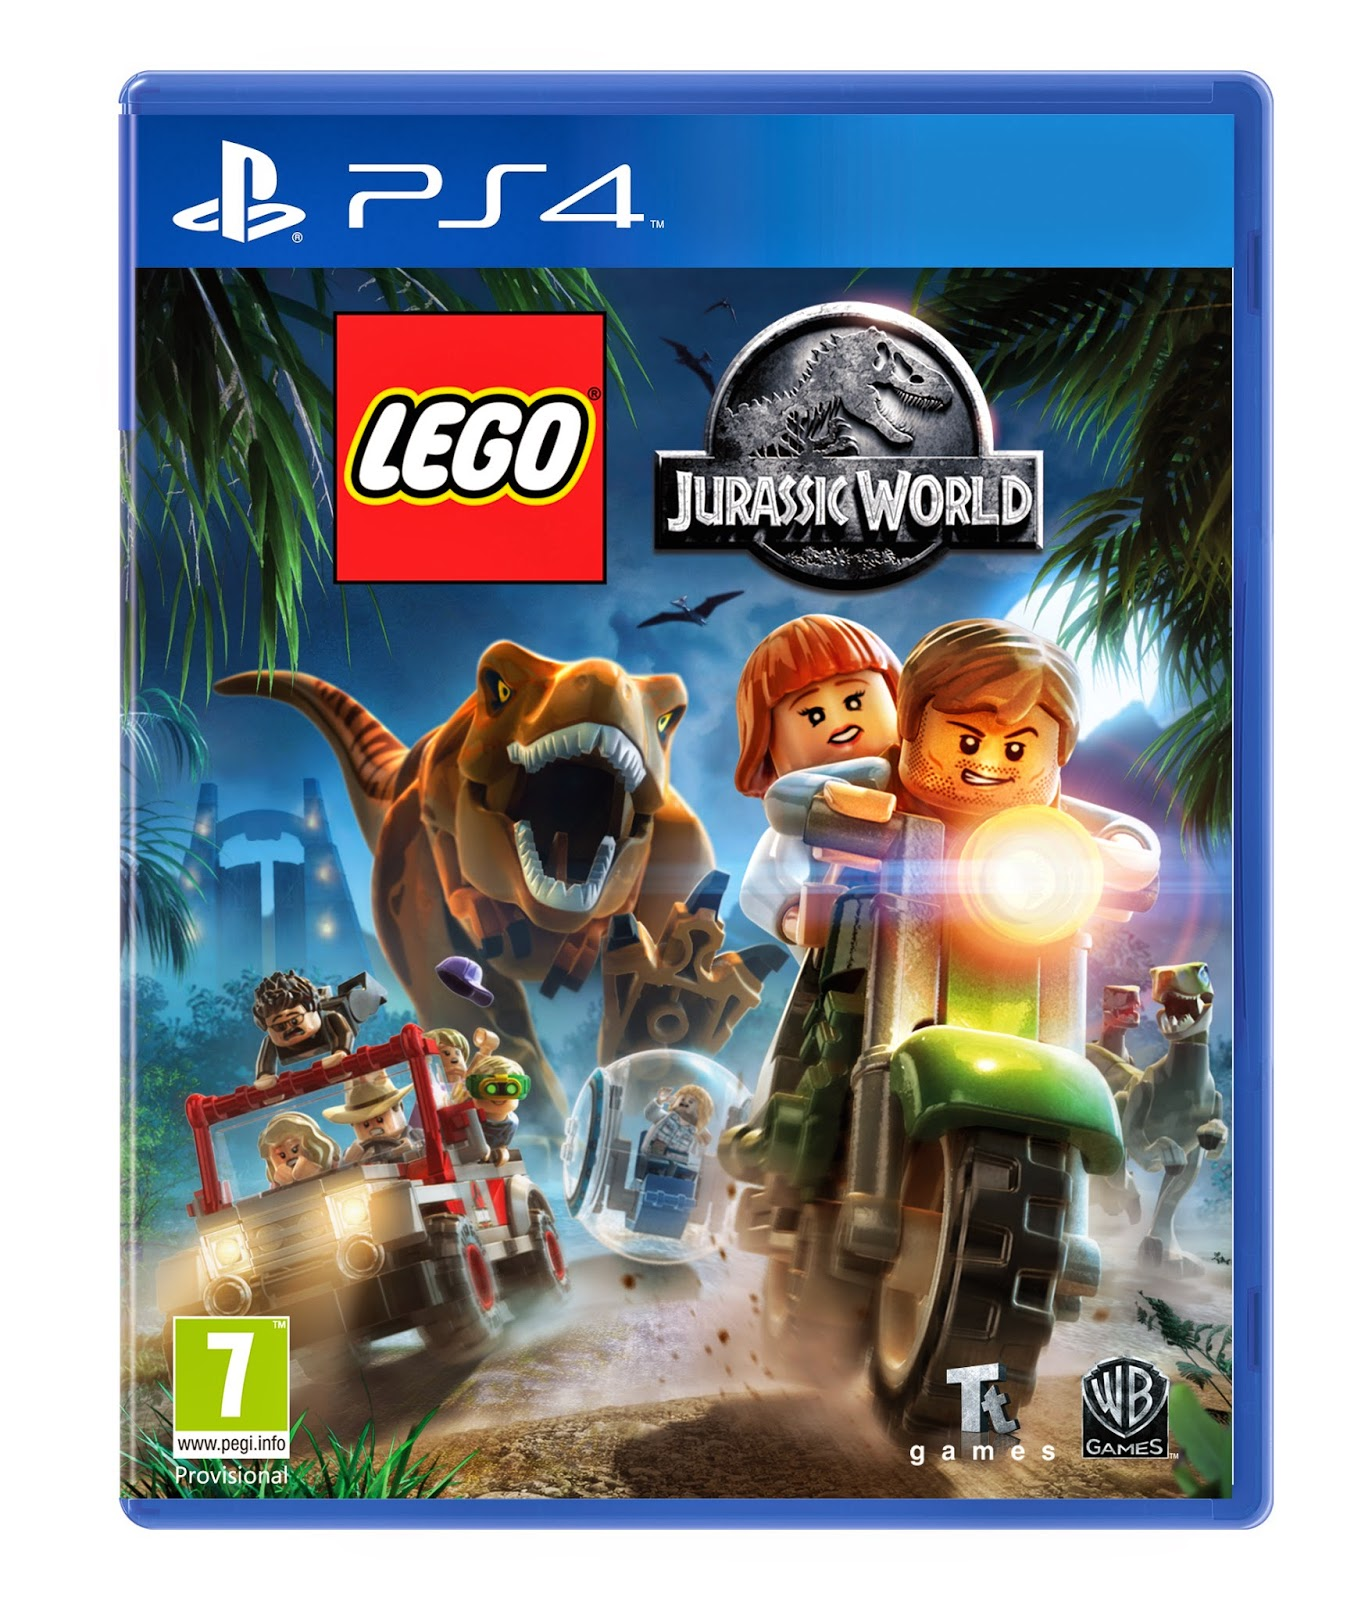 jurassic world game ps4